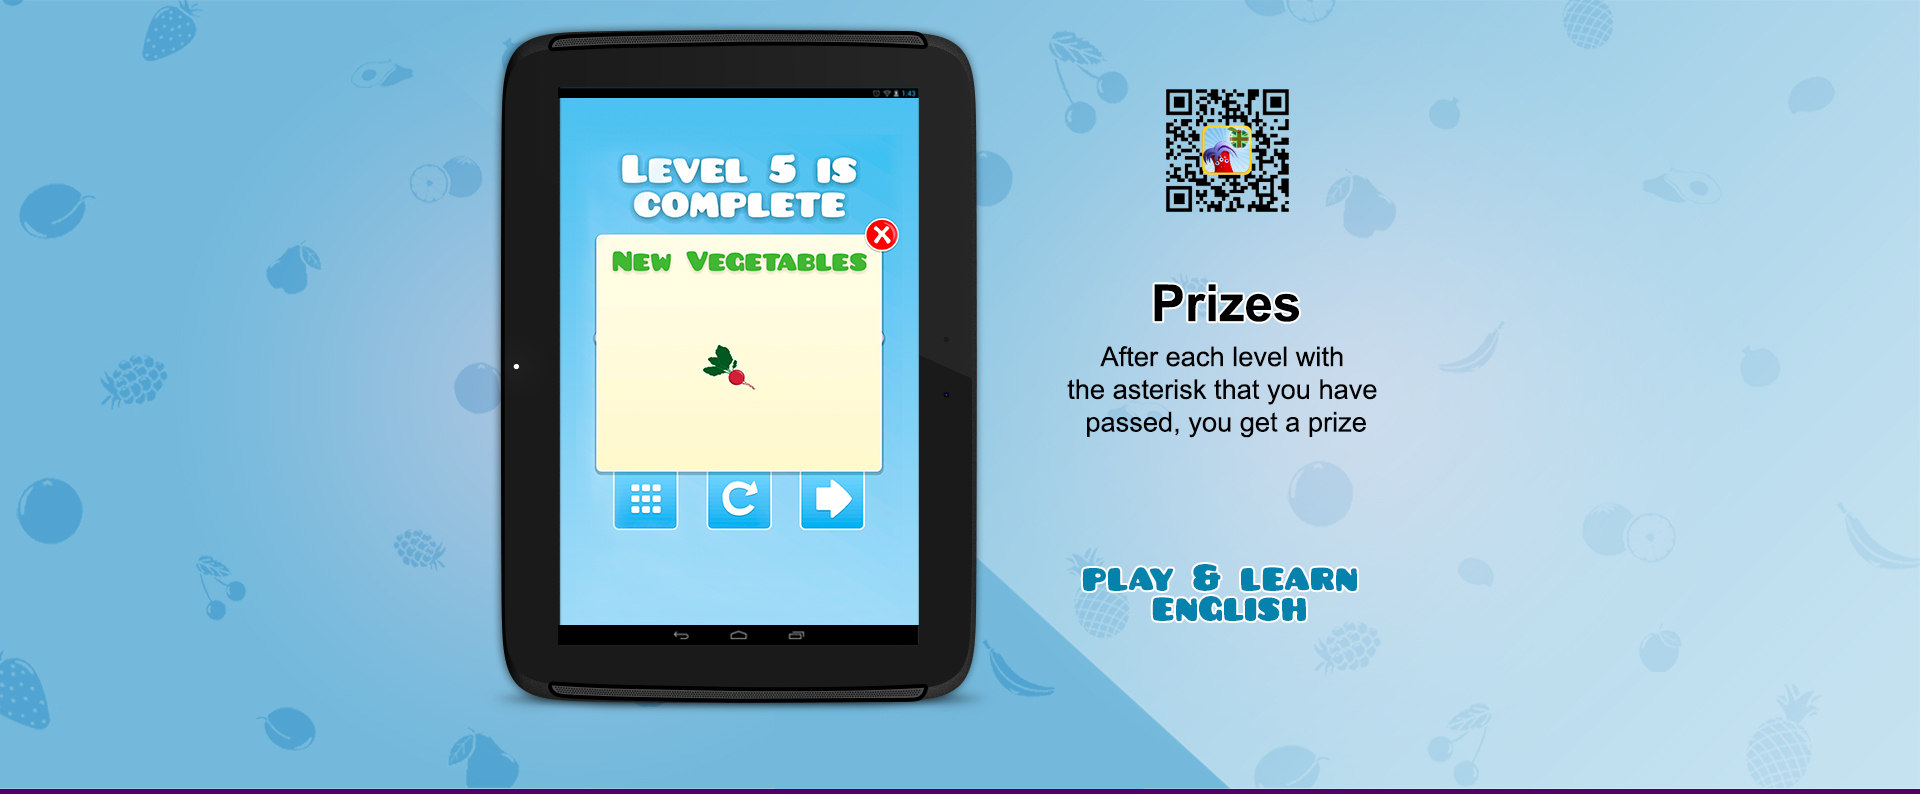 Prizes. After each level with the asterisk that you have passed you get a prize